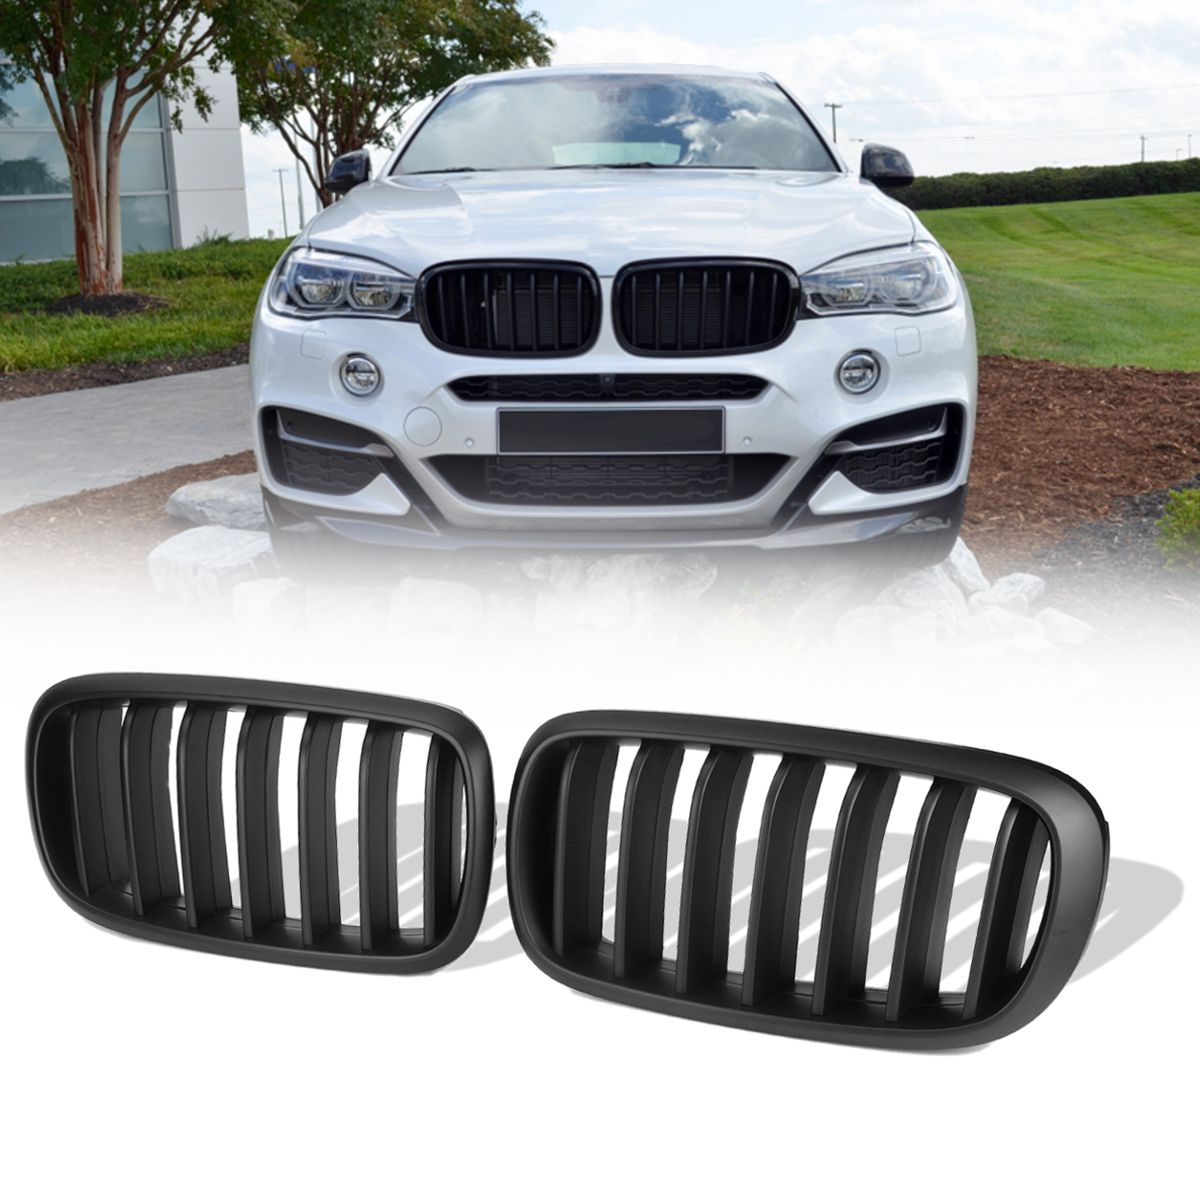 1 Pair Matte Black Front Bumper Racing Grill Kidney Grill Grilles For BMW X5 F15 X6 F16 2013 2014 2015 2016 2017 2018 x5 f15 x6 f16 abs gloss black grill for bmw x5 x6 f15 f16 front bumper grille kidney mesh